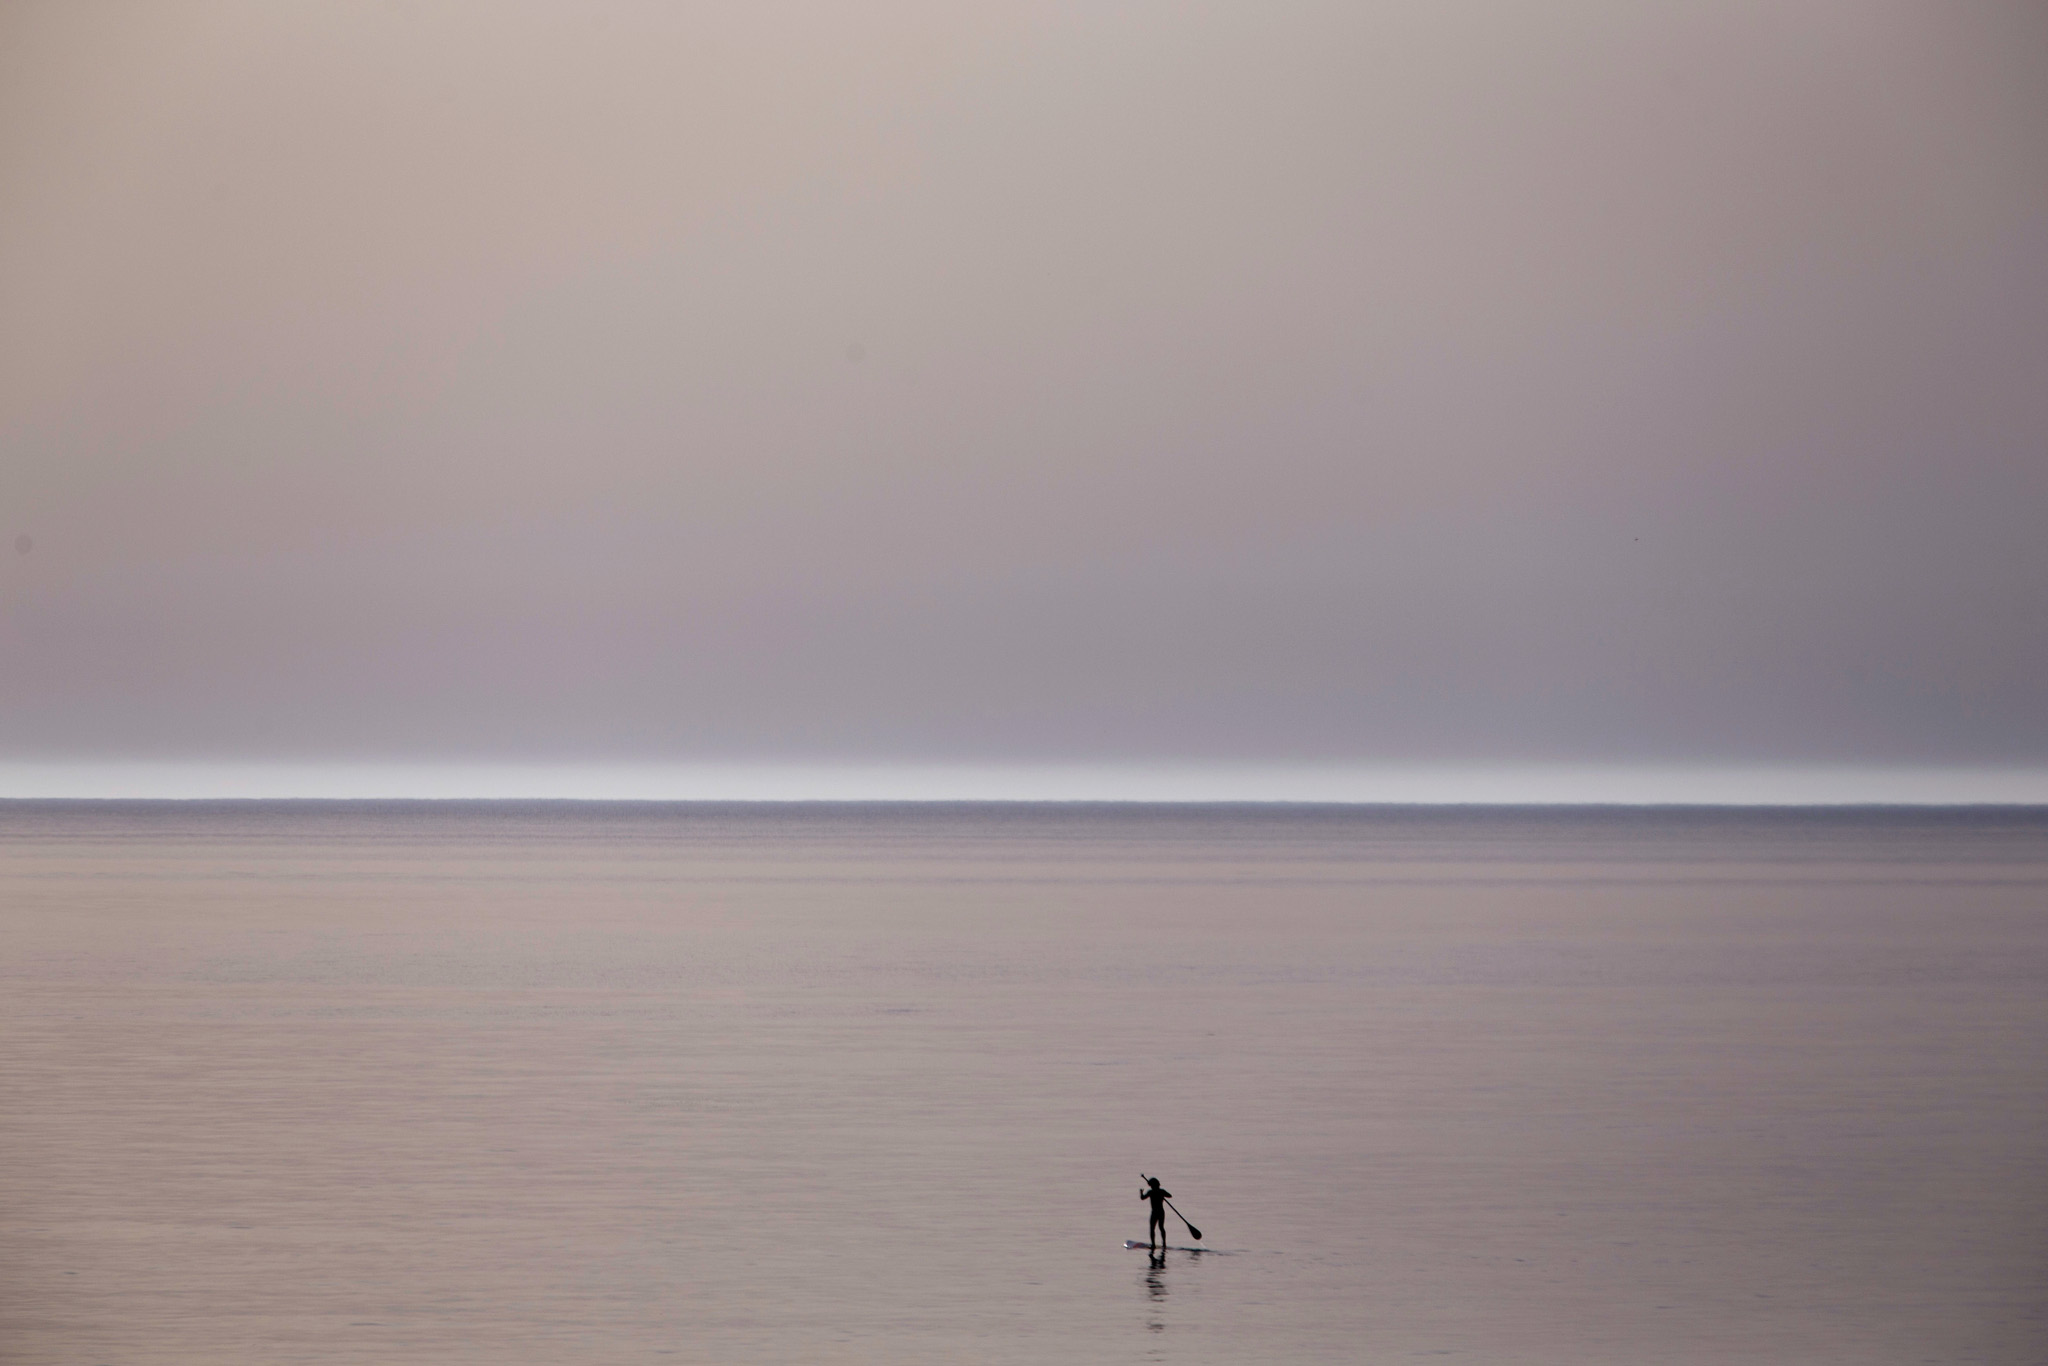 A surfer paddles in a peaceful and quiet Mediterranean sea near Beit Yanai, Israel, Tuesday, April 7, 2015, during the Passover holiday on a warm spring day. (AP Photo/Ariel Schalit)